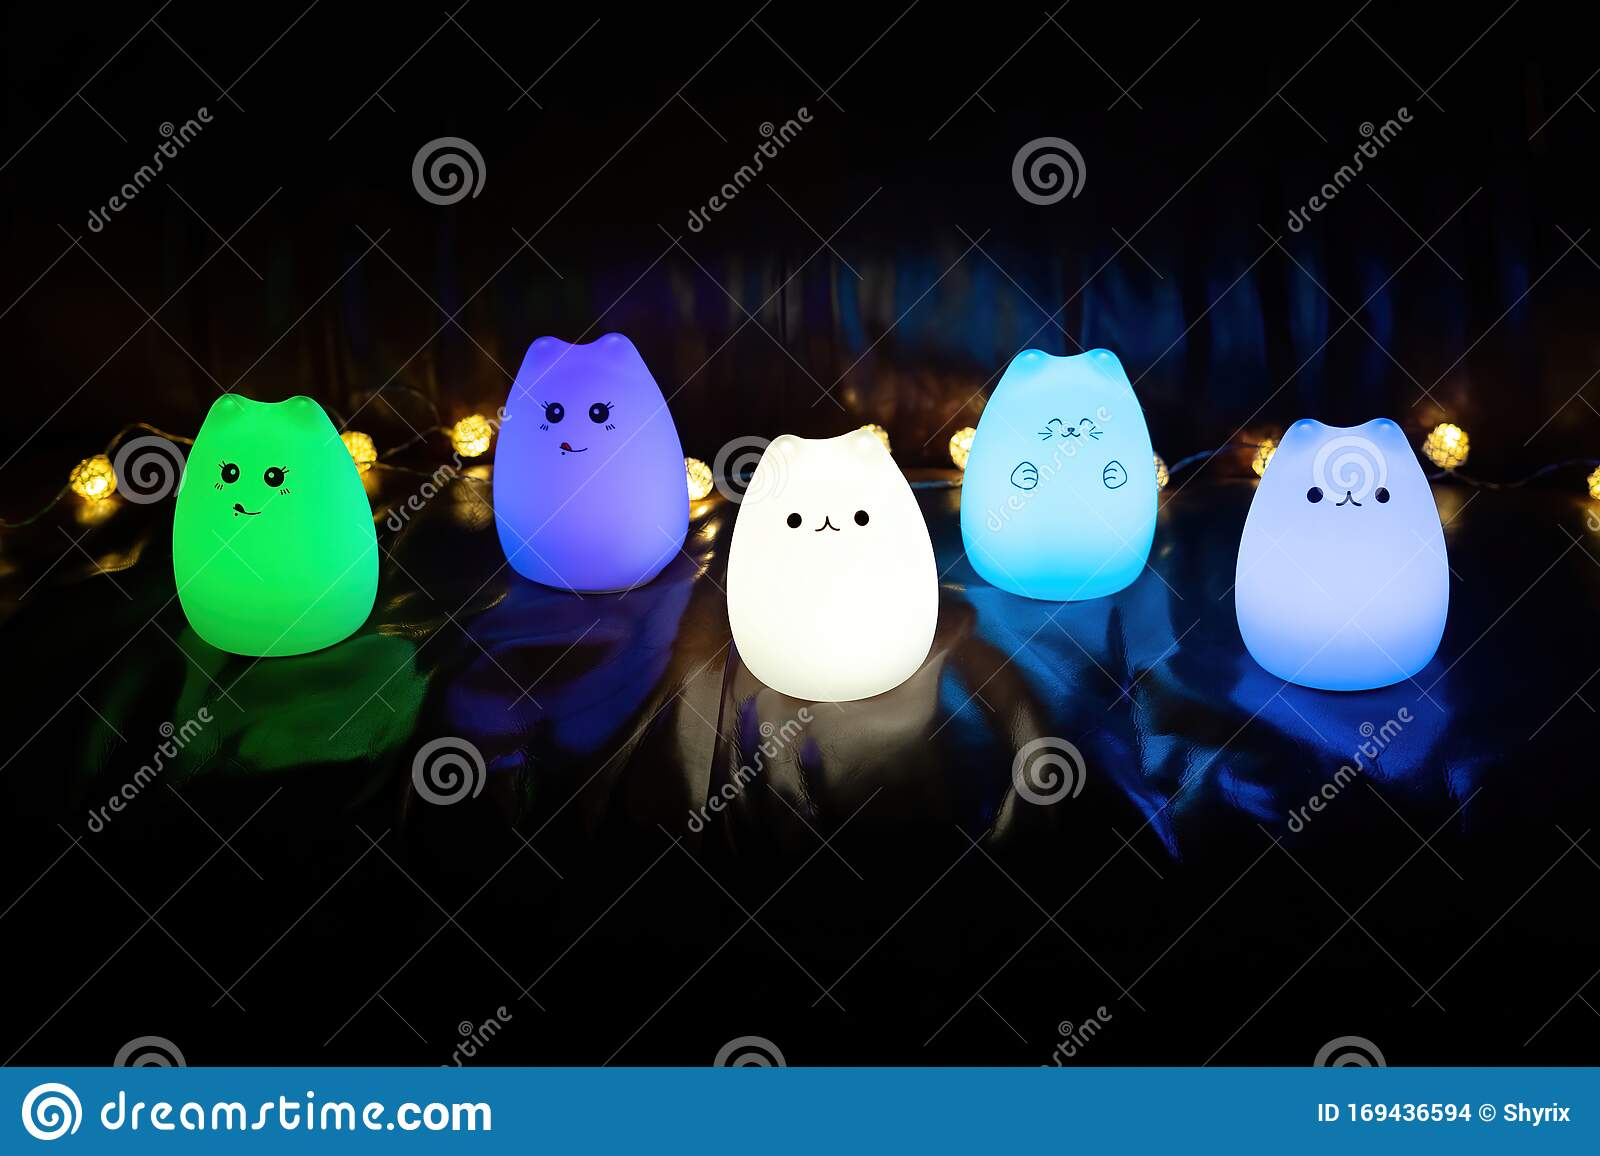 Baby Night Lamp Five Nightlights In A Row Different Colors Children S Night Lights Blue Light Front View Stock Photo Image Of Night Cute 169436594